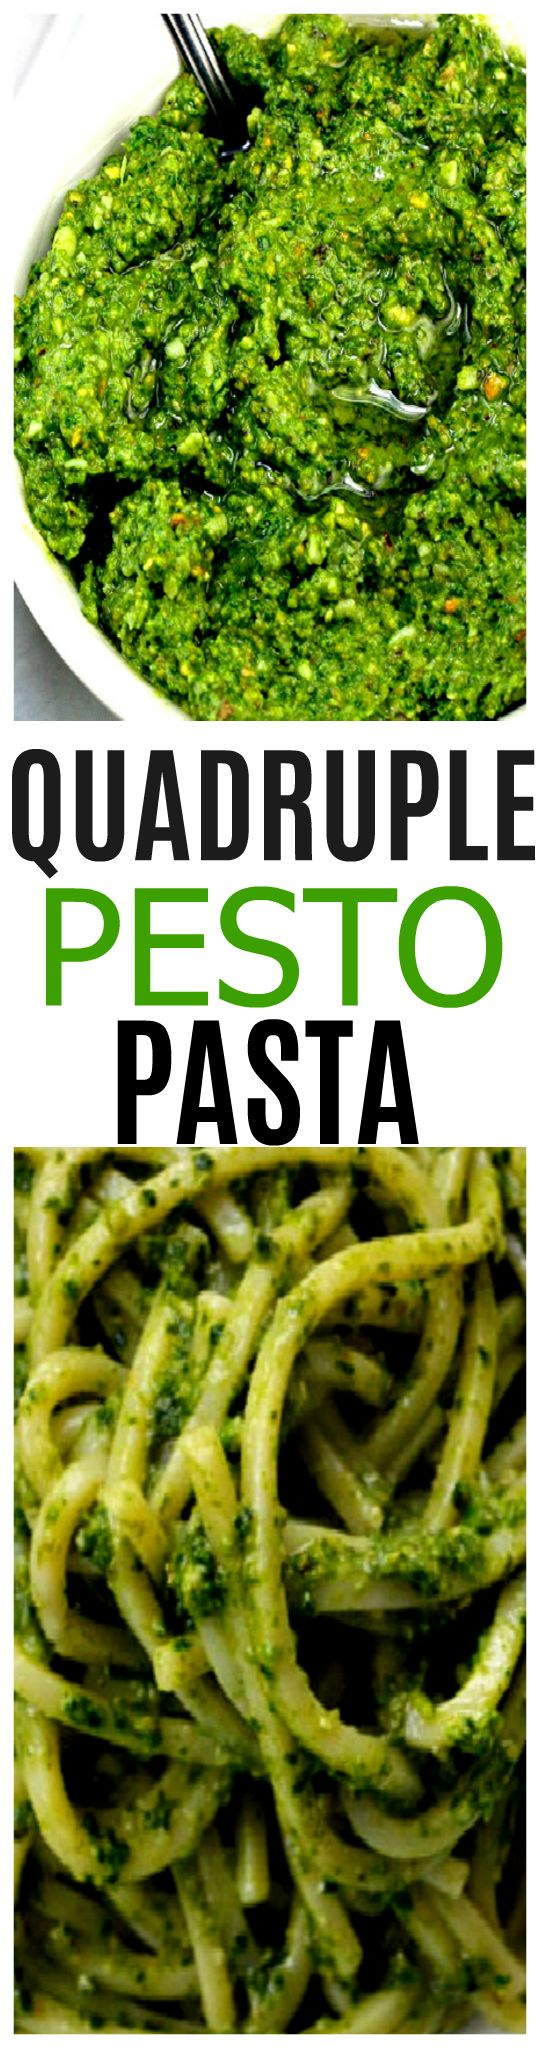 Quadruple Pesto with Extra Garlic and Cheese. This is the most flavorful pesto you will ever have! Even pesto haters love this pesto!